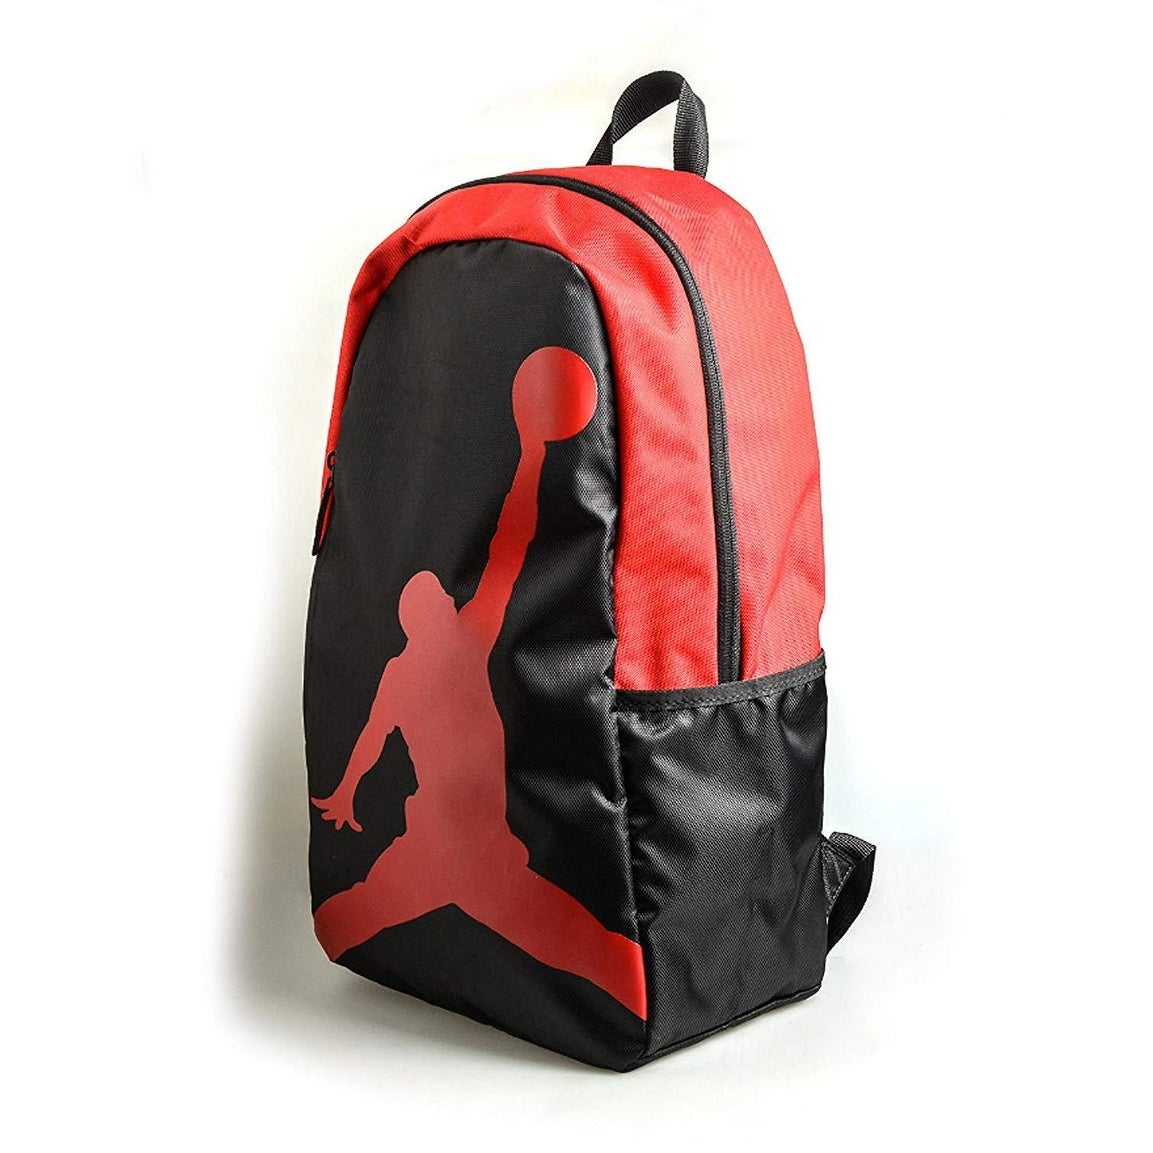 0de6c9e2a176 Shop Nike Air Jordan ISO School Backpack 9A1911 - Free Shipping On Orders  Over  45 - Overstock - 22544484